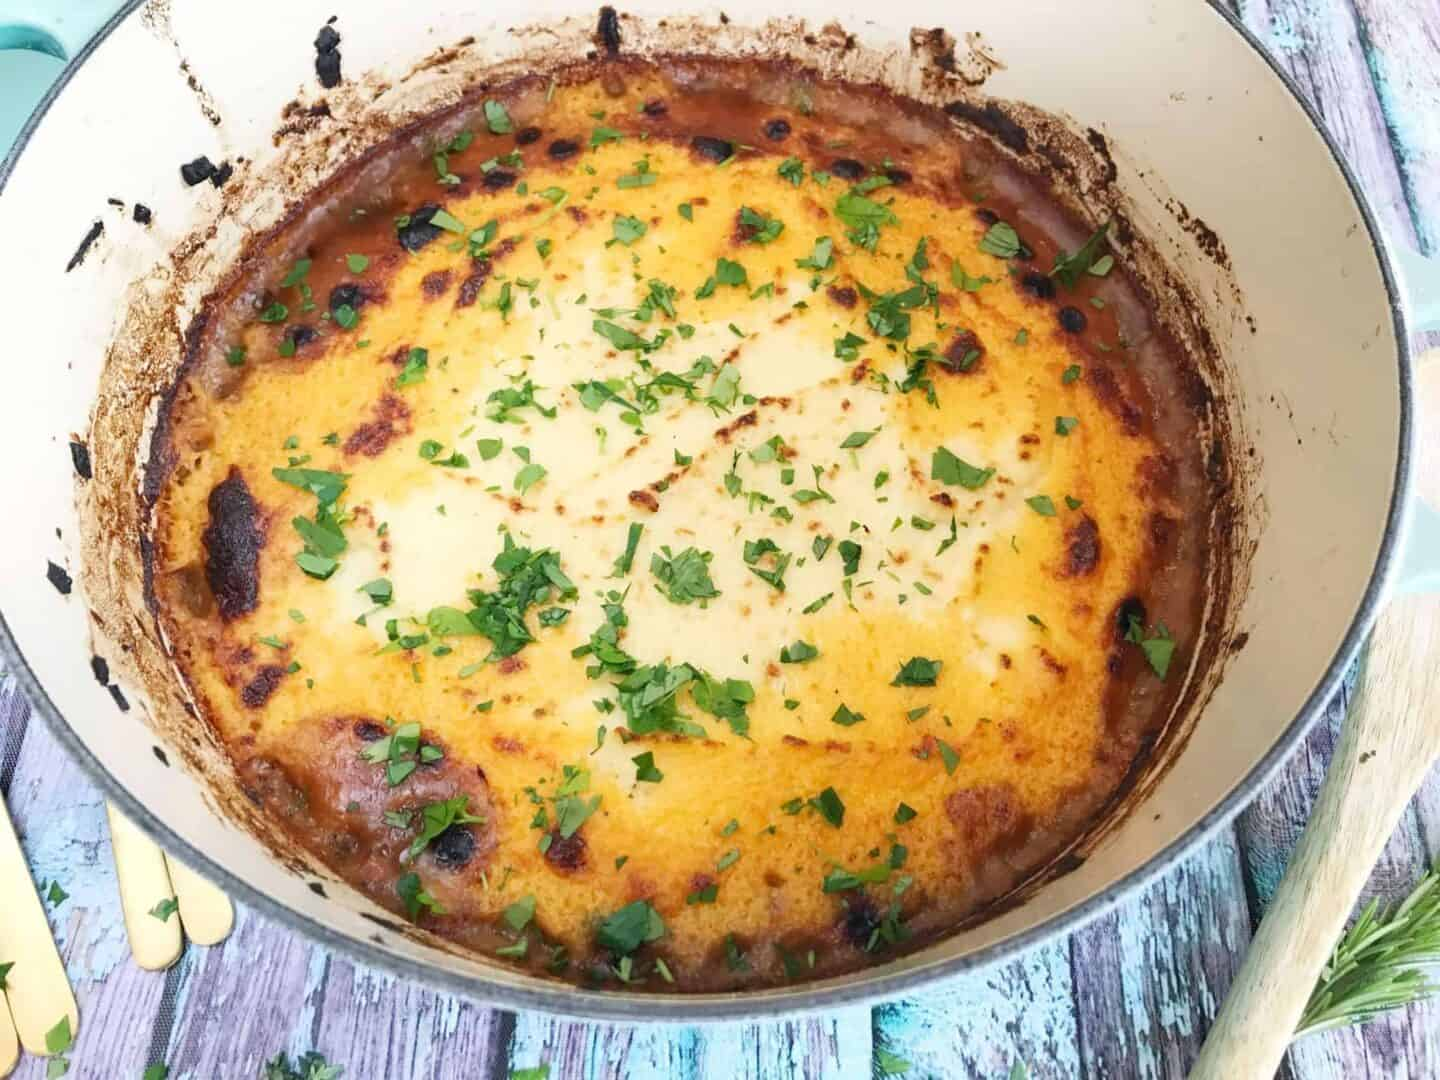 The Lighter Shepherd's Pie